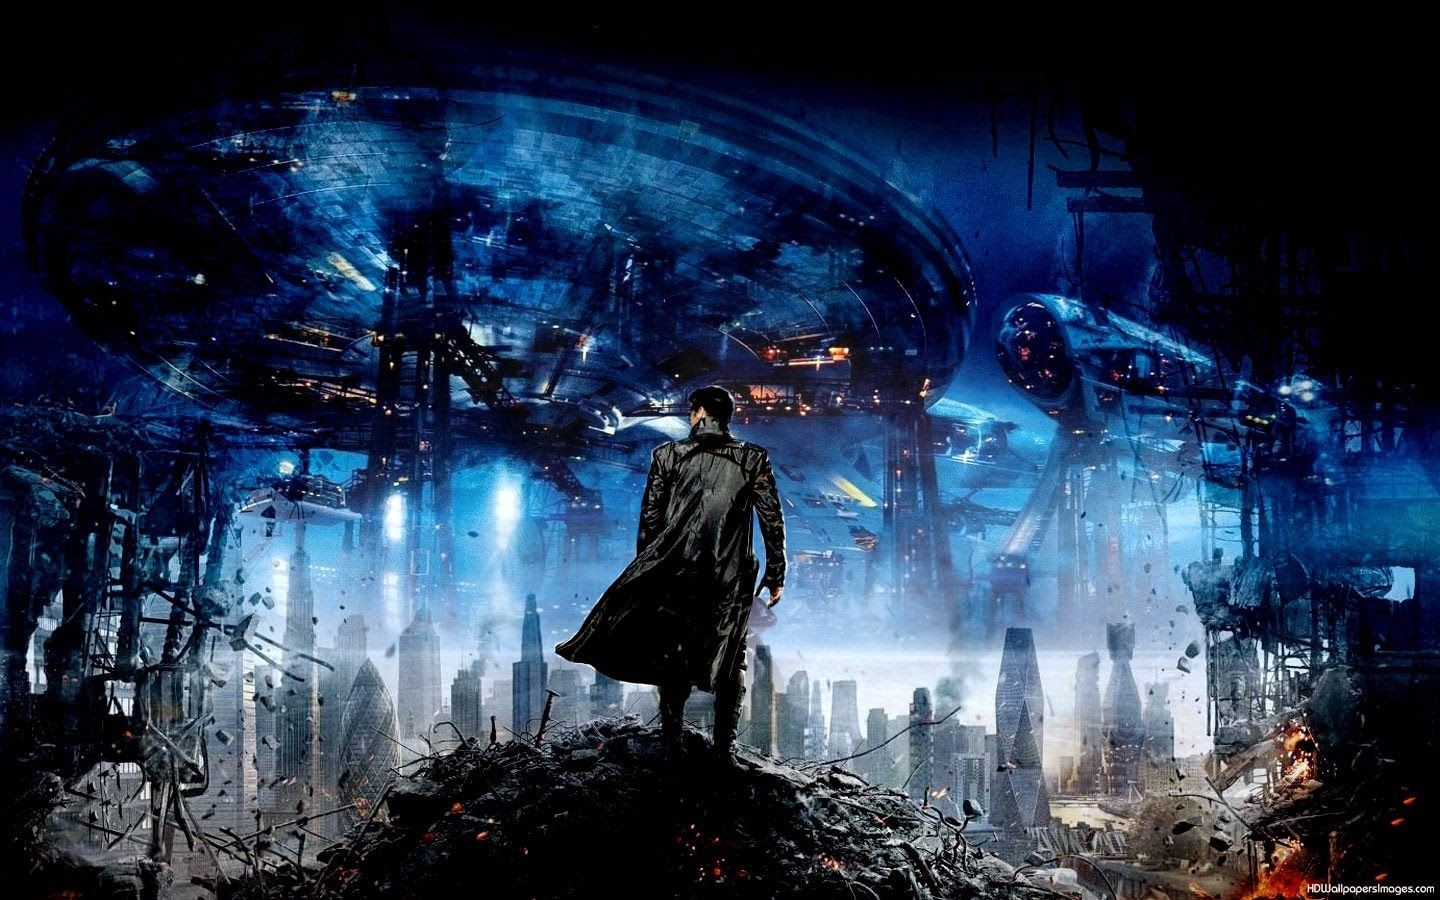 Star Trek Into Darkness Backgrounds With Images Star Trek Into